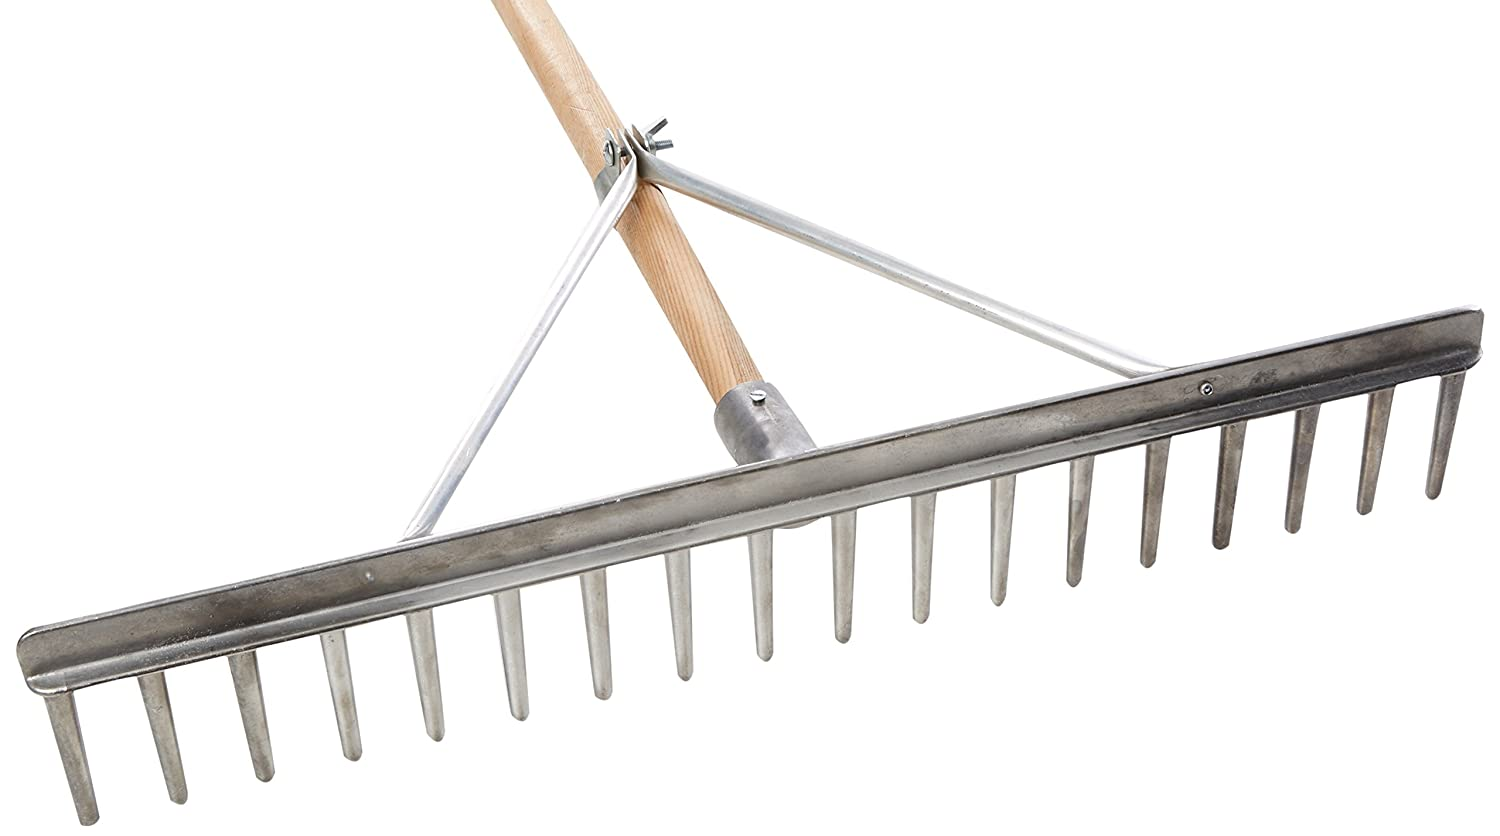 Spear Amp Jackson Agricultural Alloy Landscaping Rake Amazoncouk